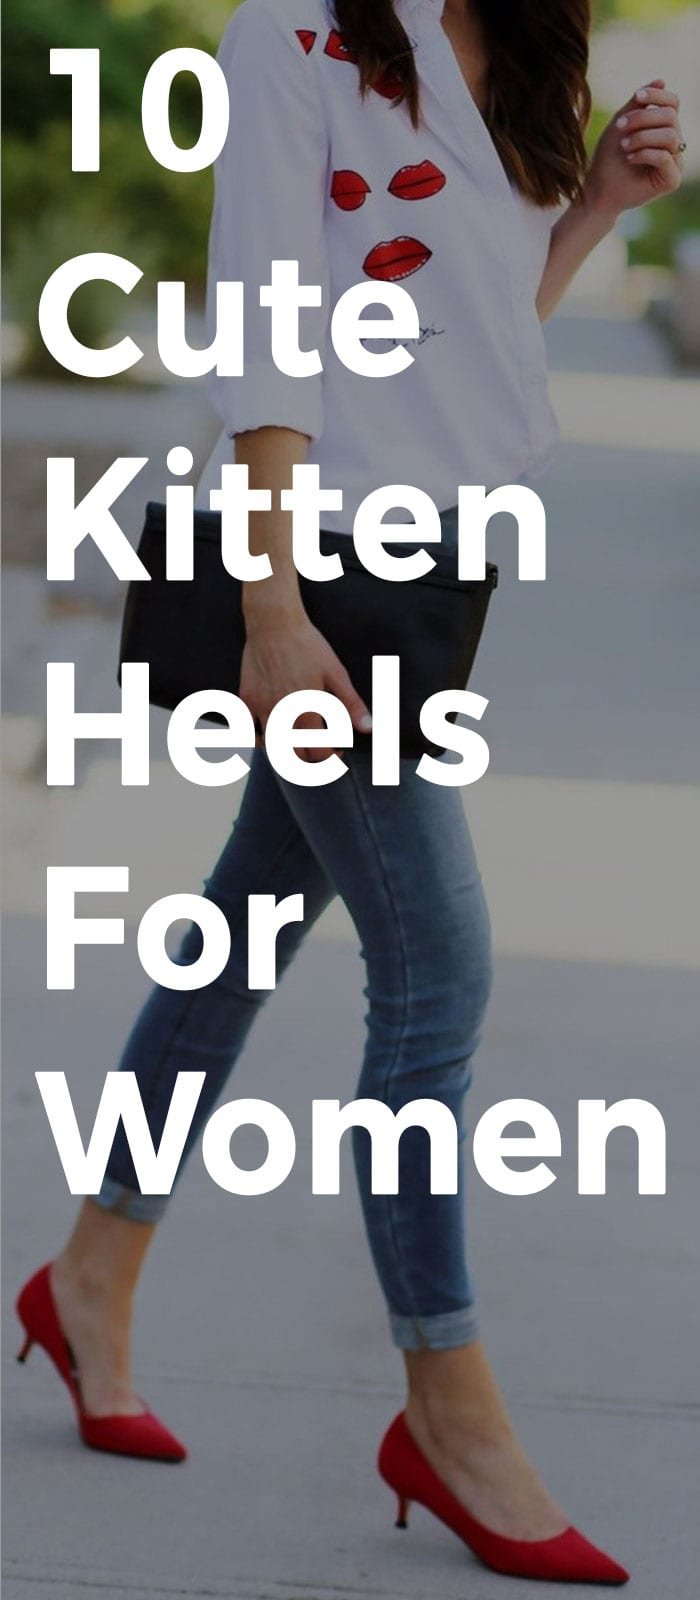 Cute Kitten Heels That You Can Pair With Any Outfits